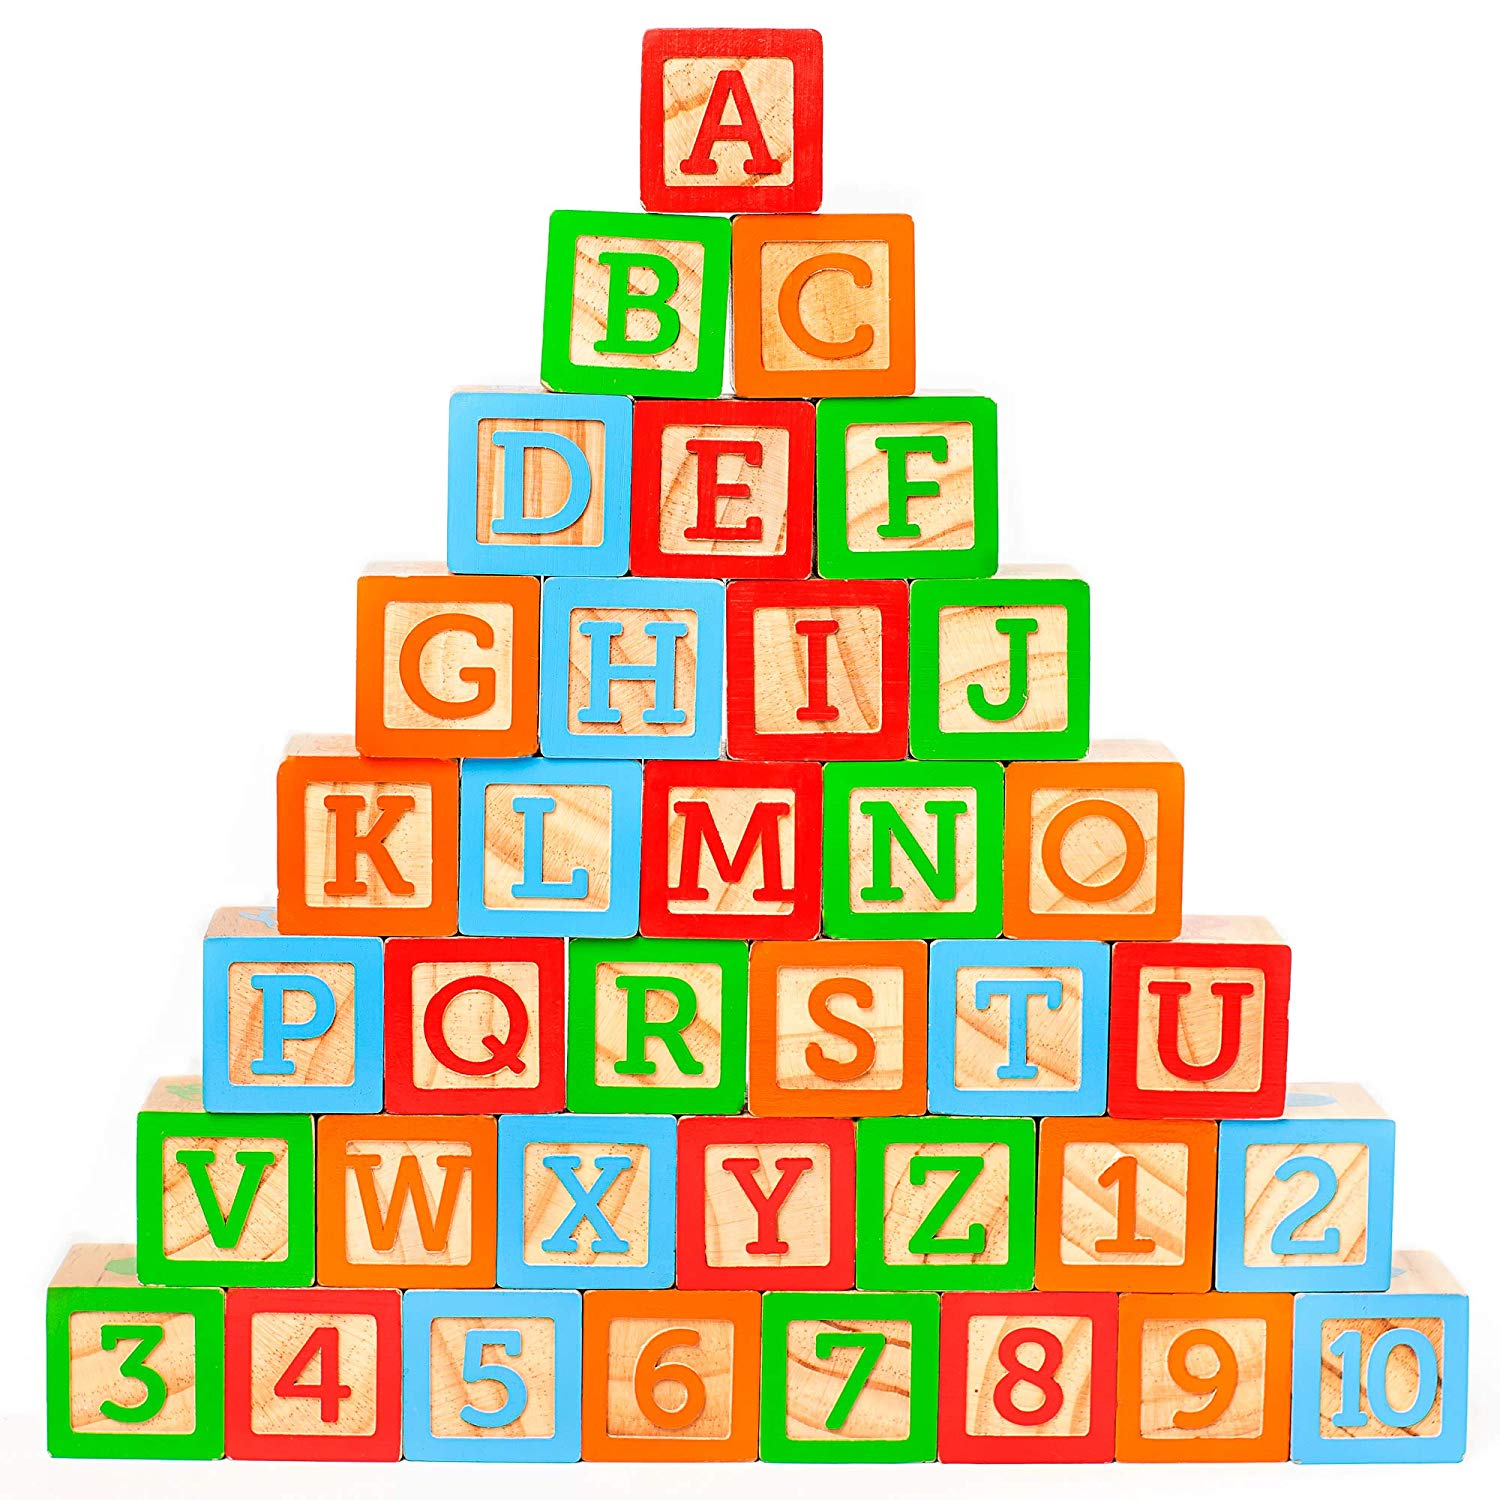 """ABC Wooden Building Blocks for Baby. Large (1 ¾"""" ) Jumbo Size w/ Letters,  Numbers (1, 2, 3, etc) and Pictures. Stacking Wood Toy for Toddlers that."""